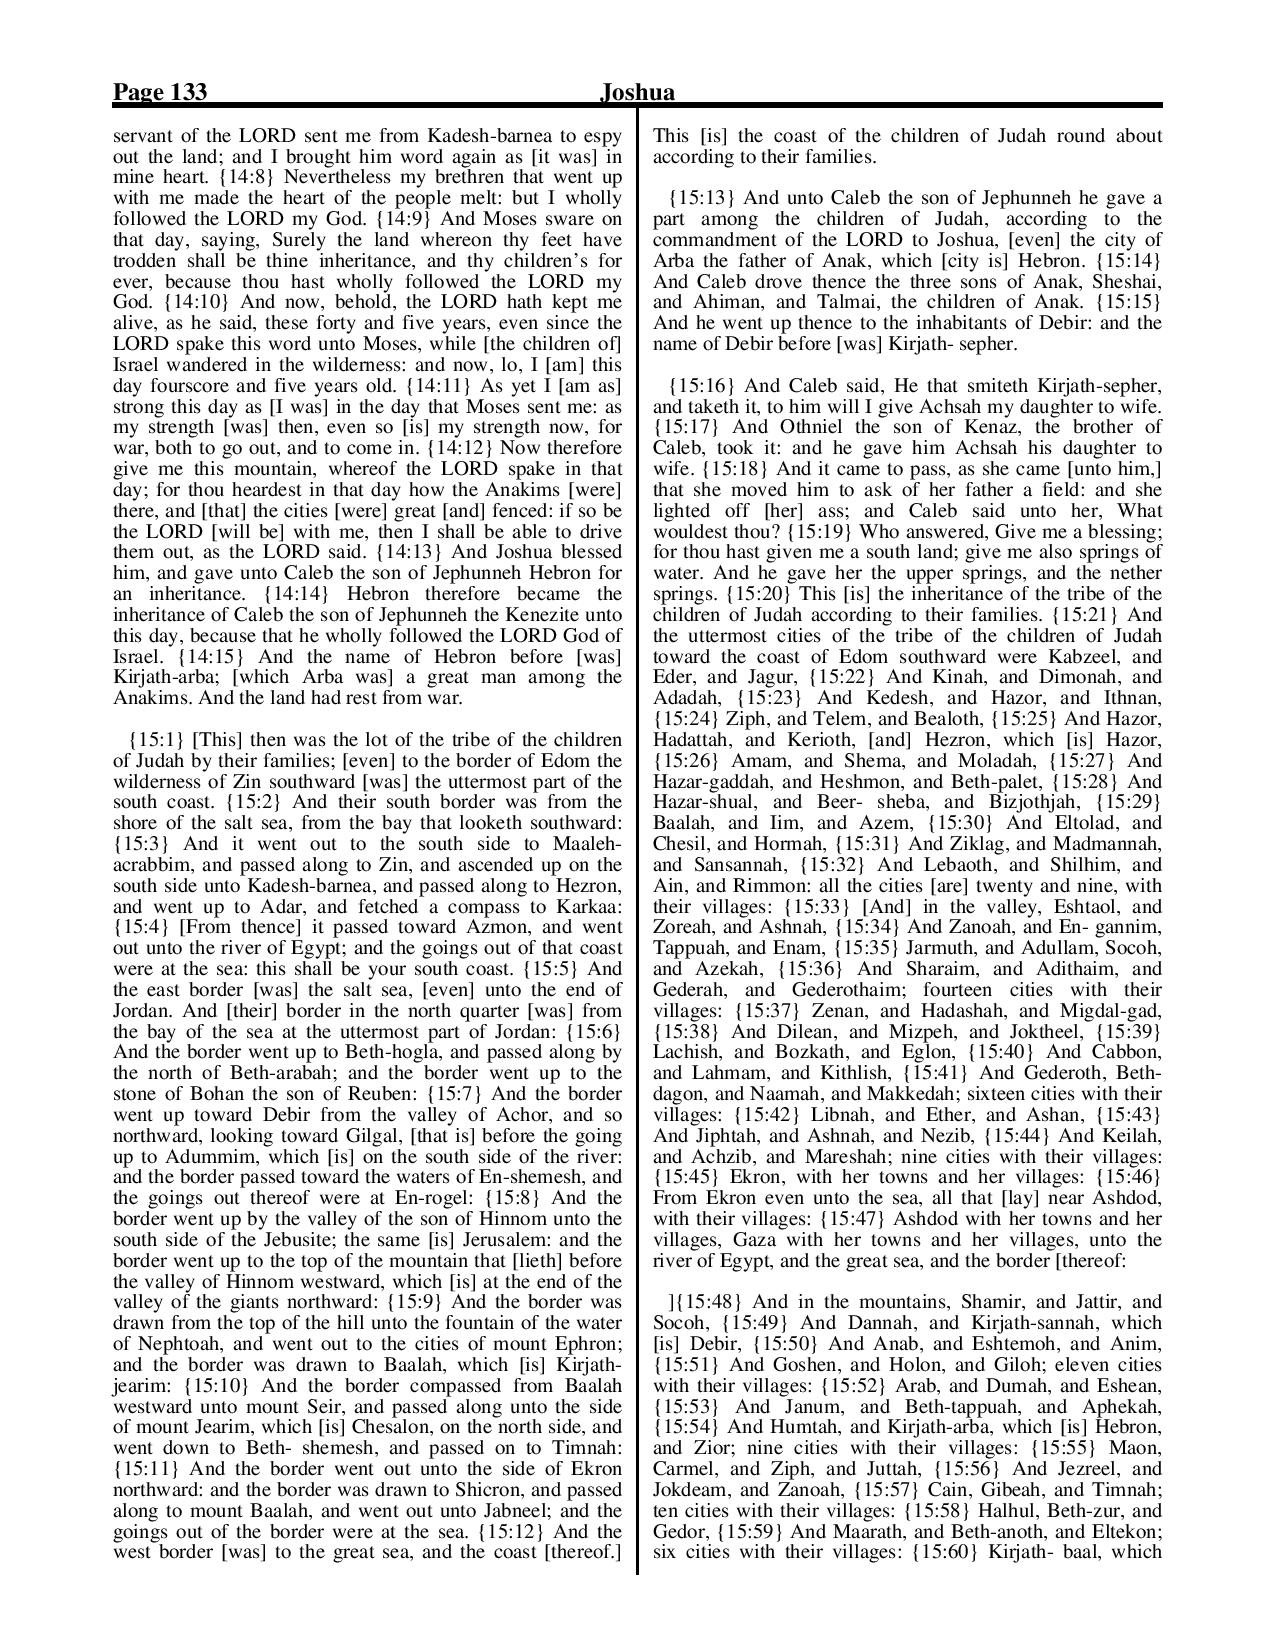 King-James-Bible-KJV-Bible-PDF-page-154